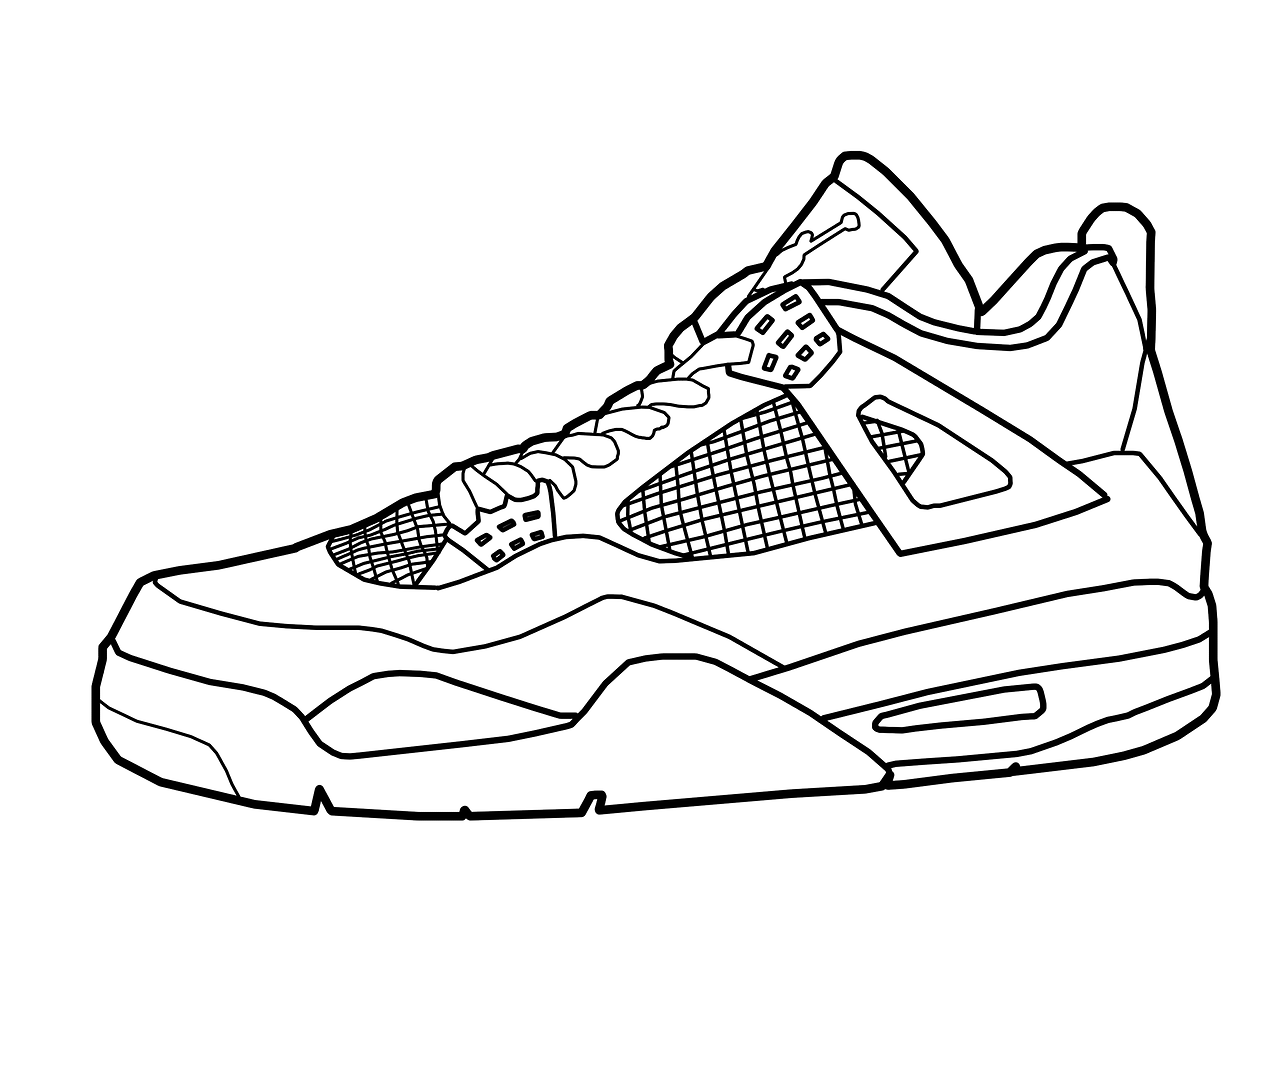 jordans shoes coloring pages - photo#10